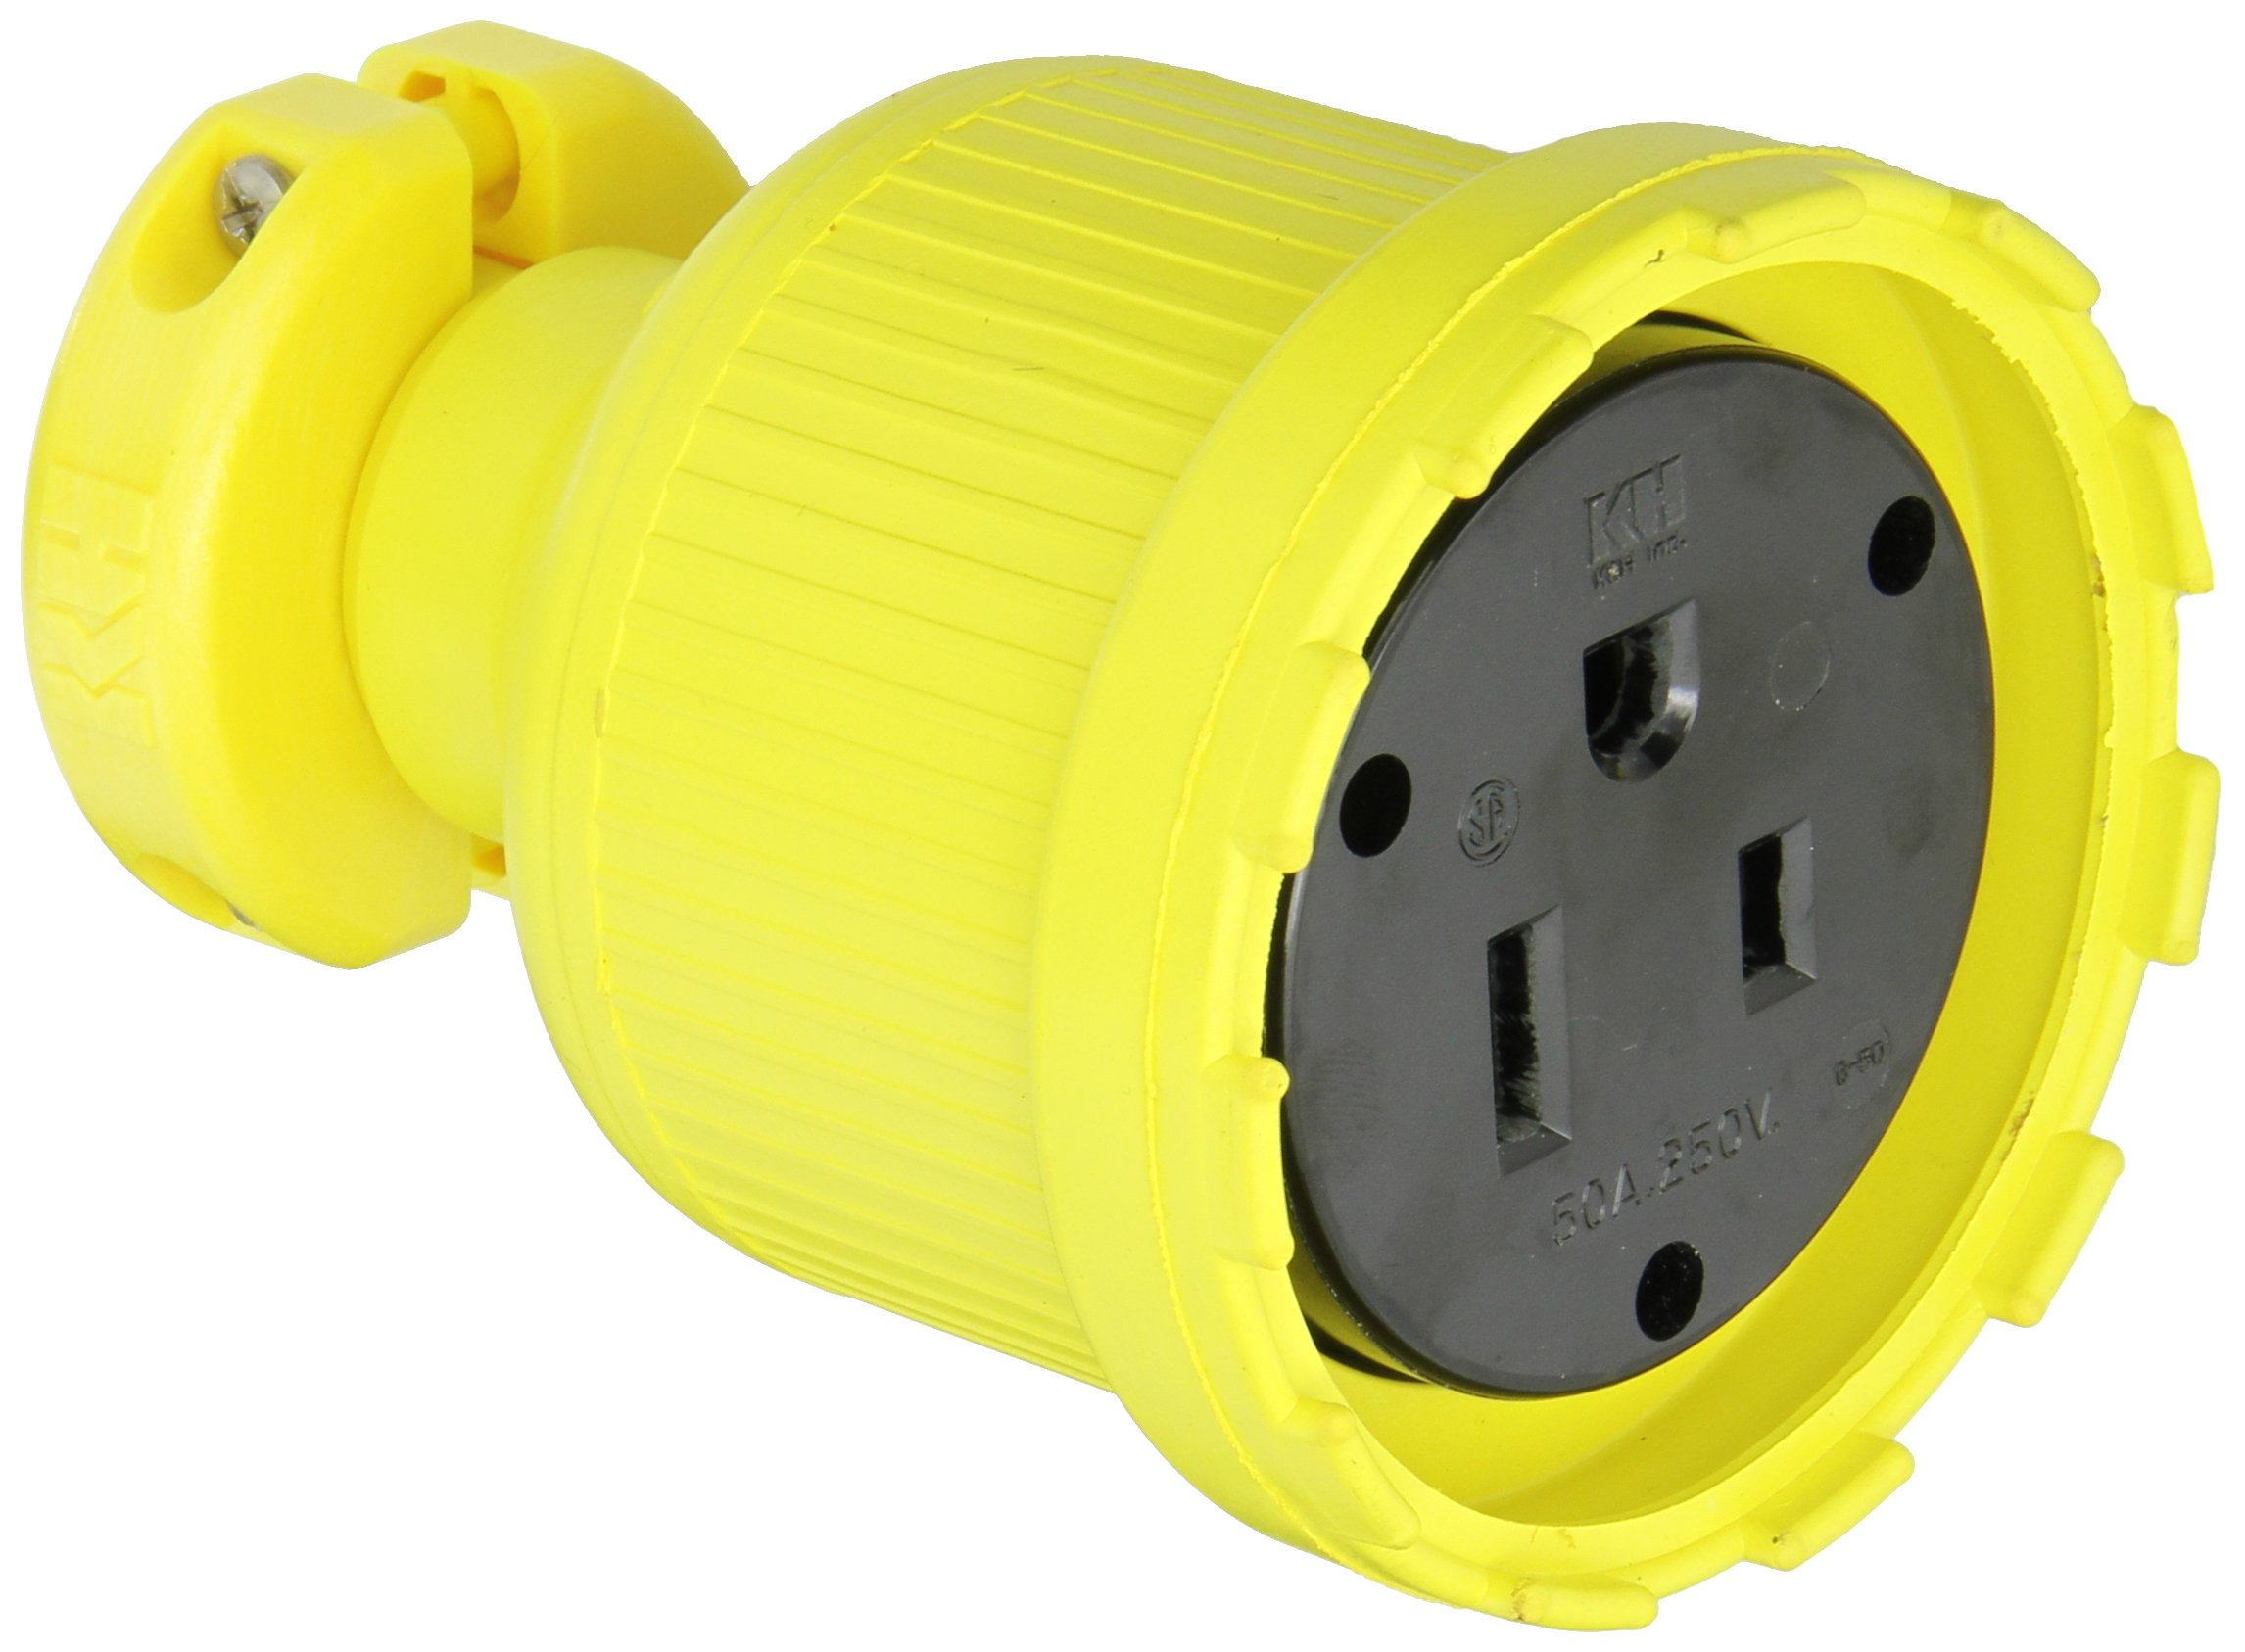 KH Industries C650DF Rubber/Polycarbonate Rewireable Flip Seal Straight Blade Connector, 2 Pole/3 Wire, 50 amps, 250V AC, Yellow